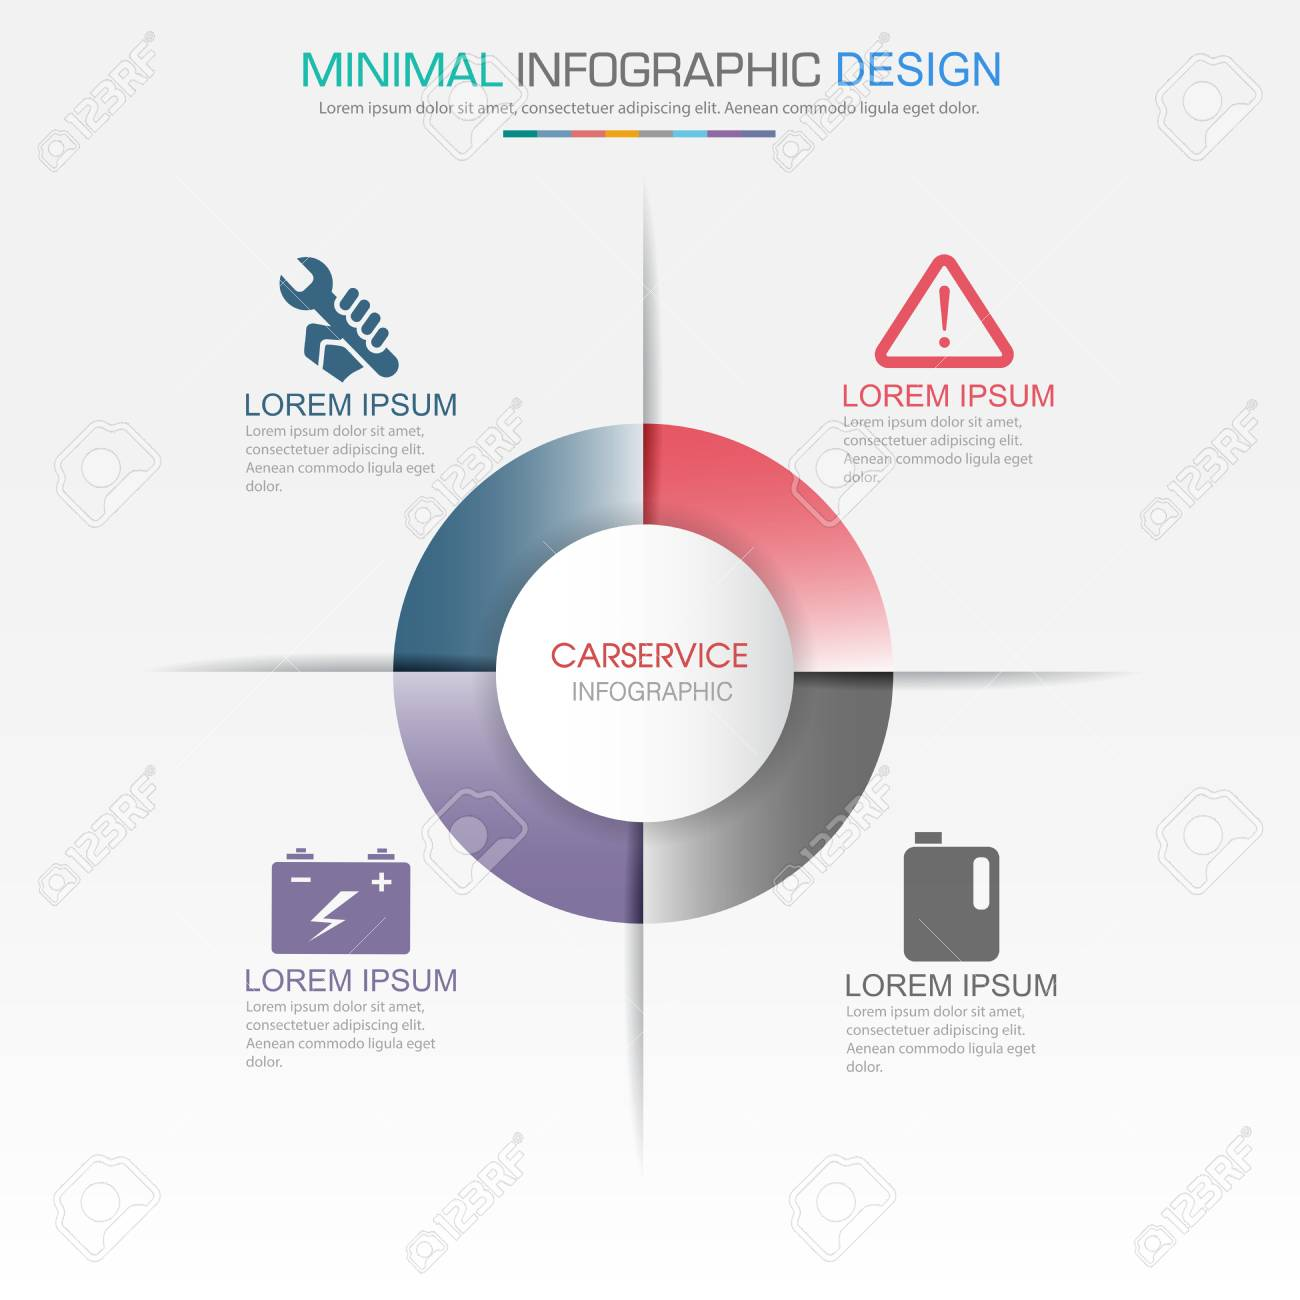 Infographic elements with service icon on full color background infographic elements with service icon on full color background circle process or steps and options workflow ccuart Choice Image